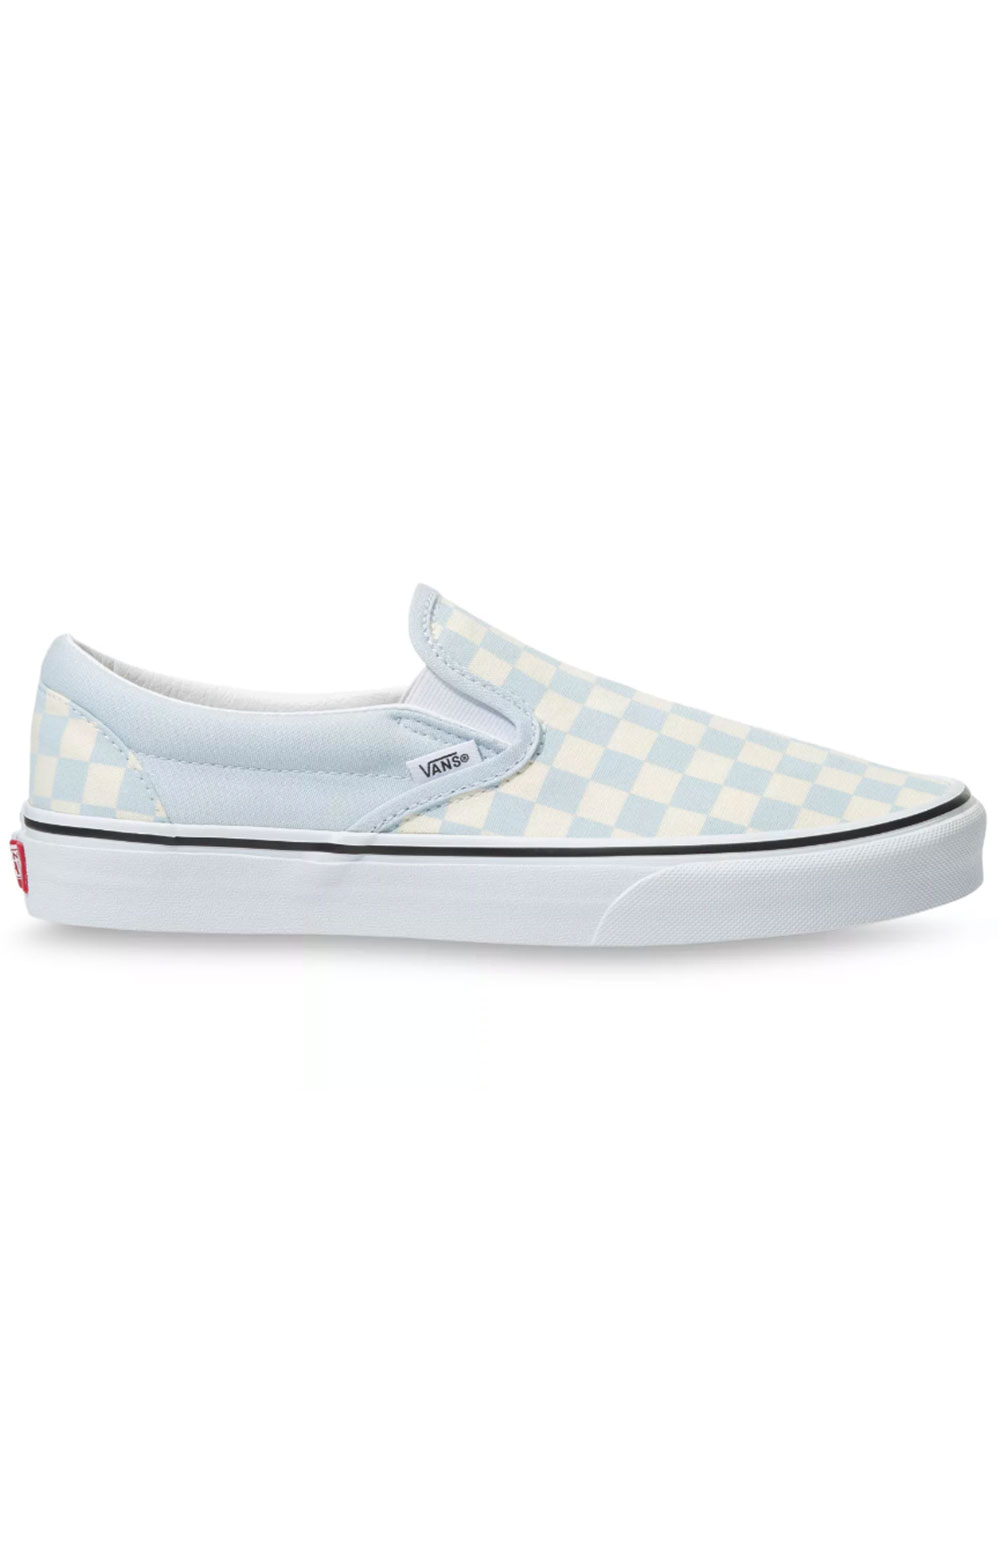 (3TB42Y) Checkerboard Classic Slip-On Shoes - Ballad Blue